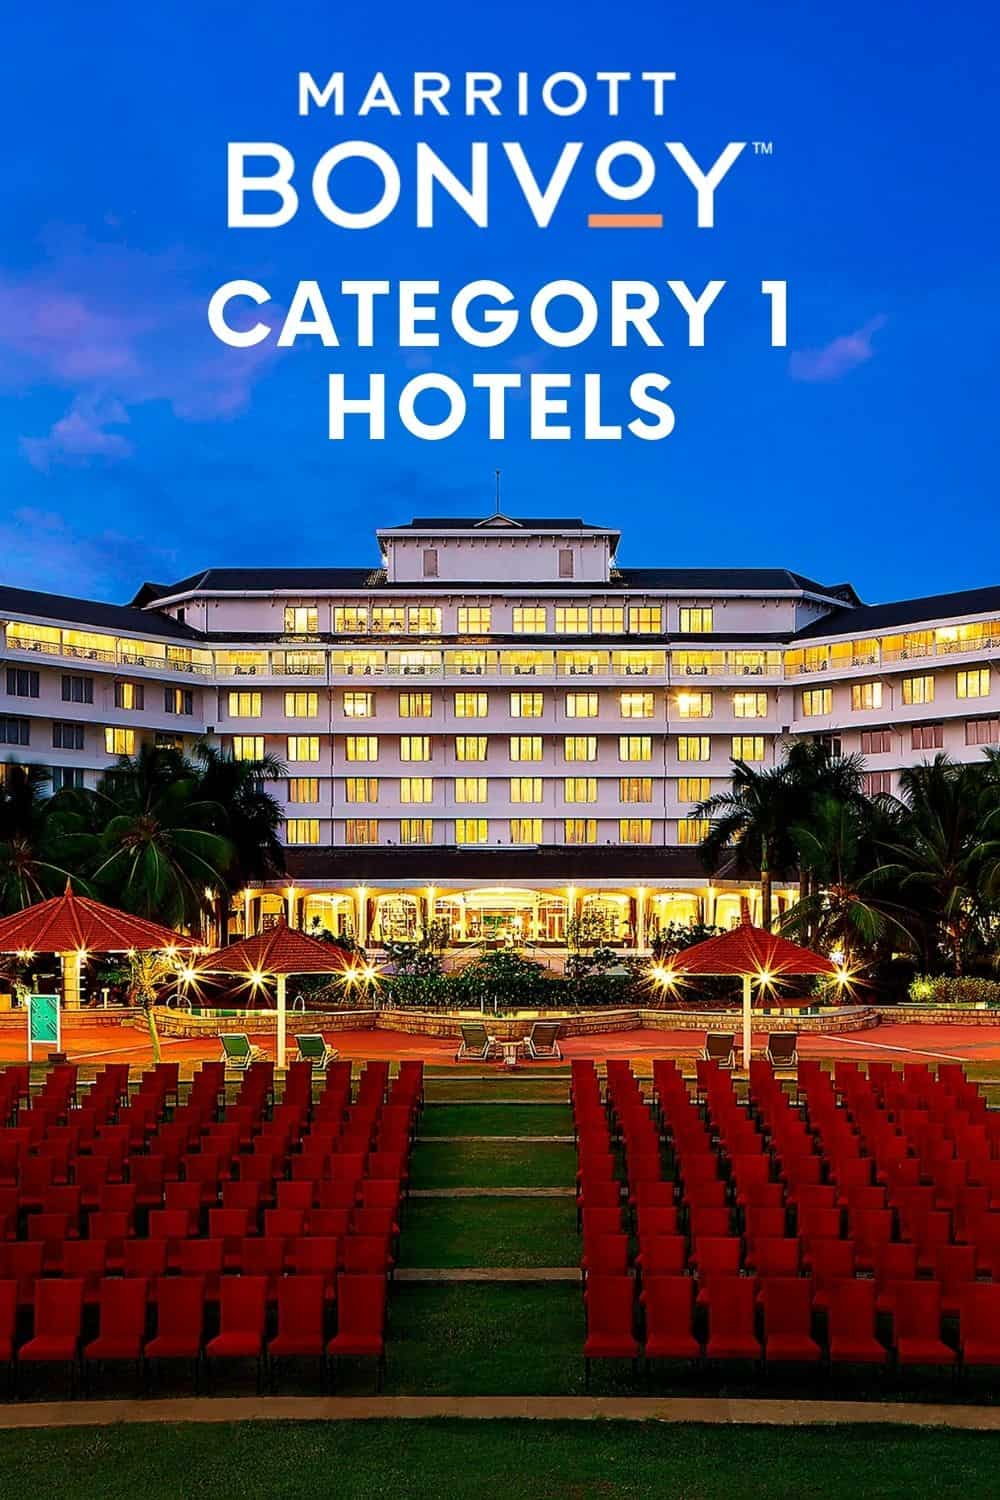 Category 1 Hotels with Marriott That Will Surprise You